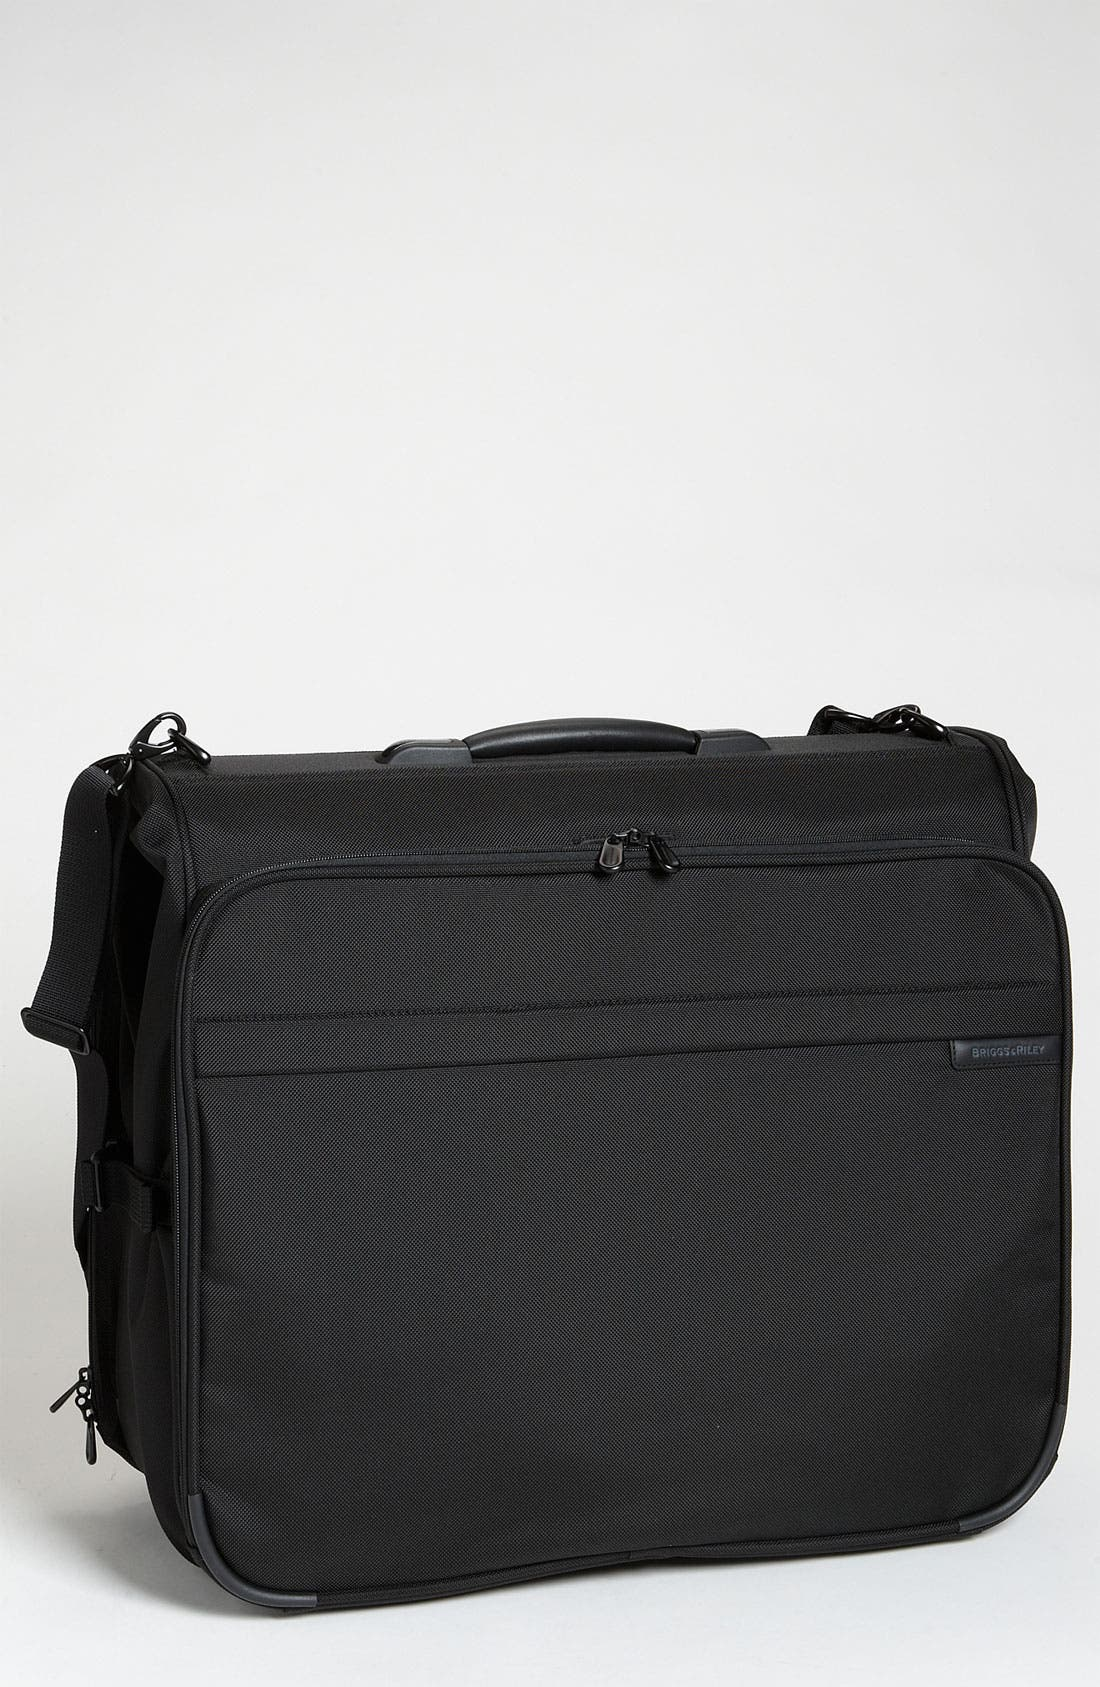 Main Image - Briggs & Riley 'Baseline - Deluxe' Garment Bag (22 Inch)